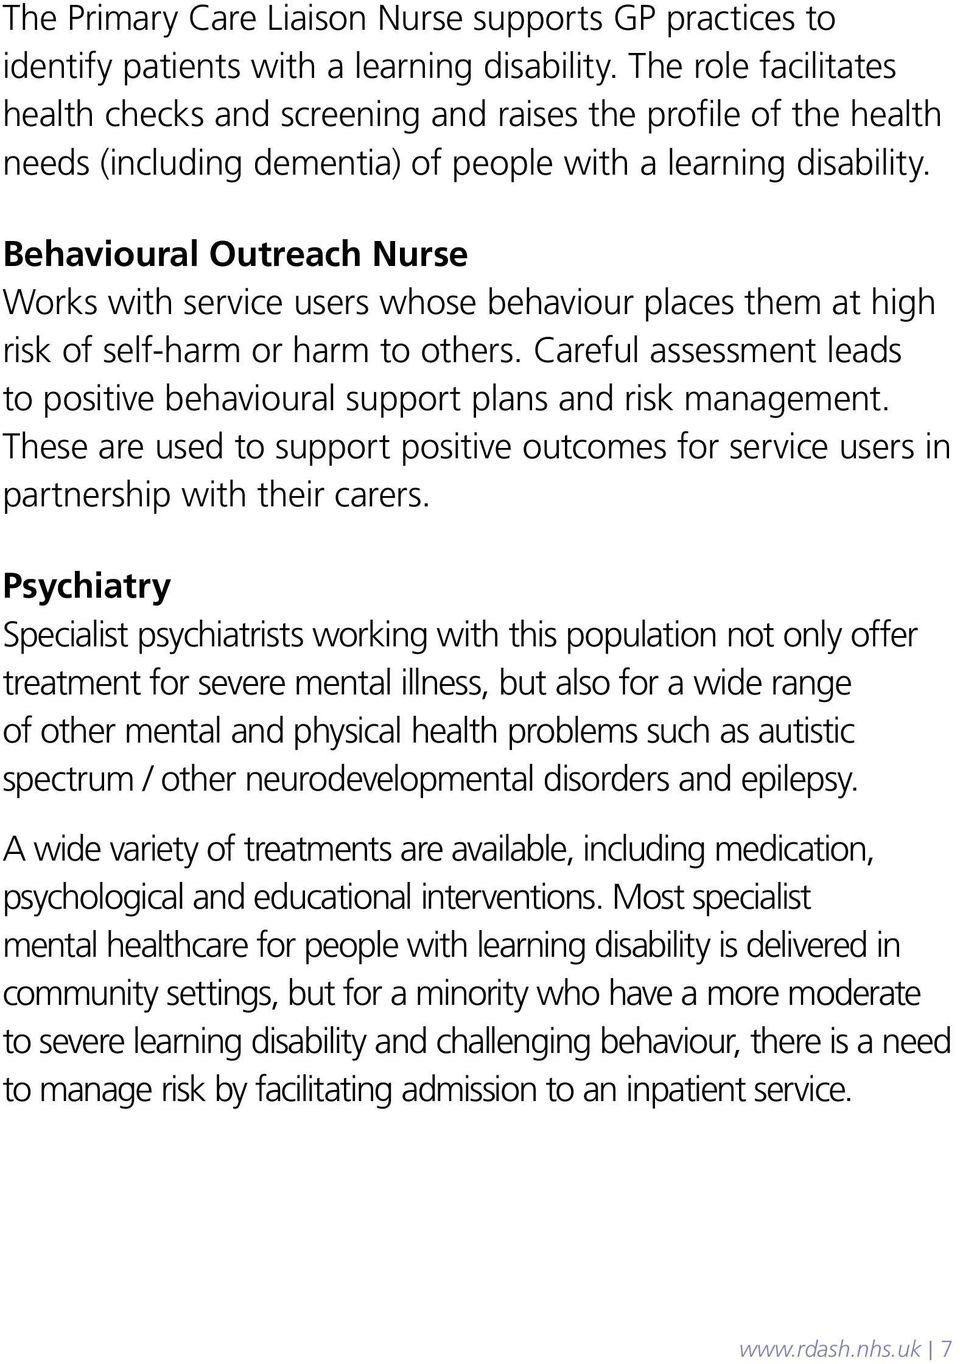 Behavioural Outreach Nurse Works with service users whose behaviour places them at high risk of self-harm or harm to others.